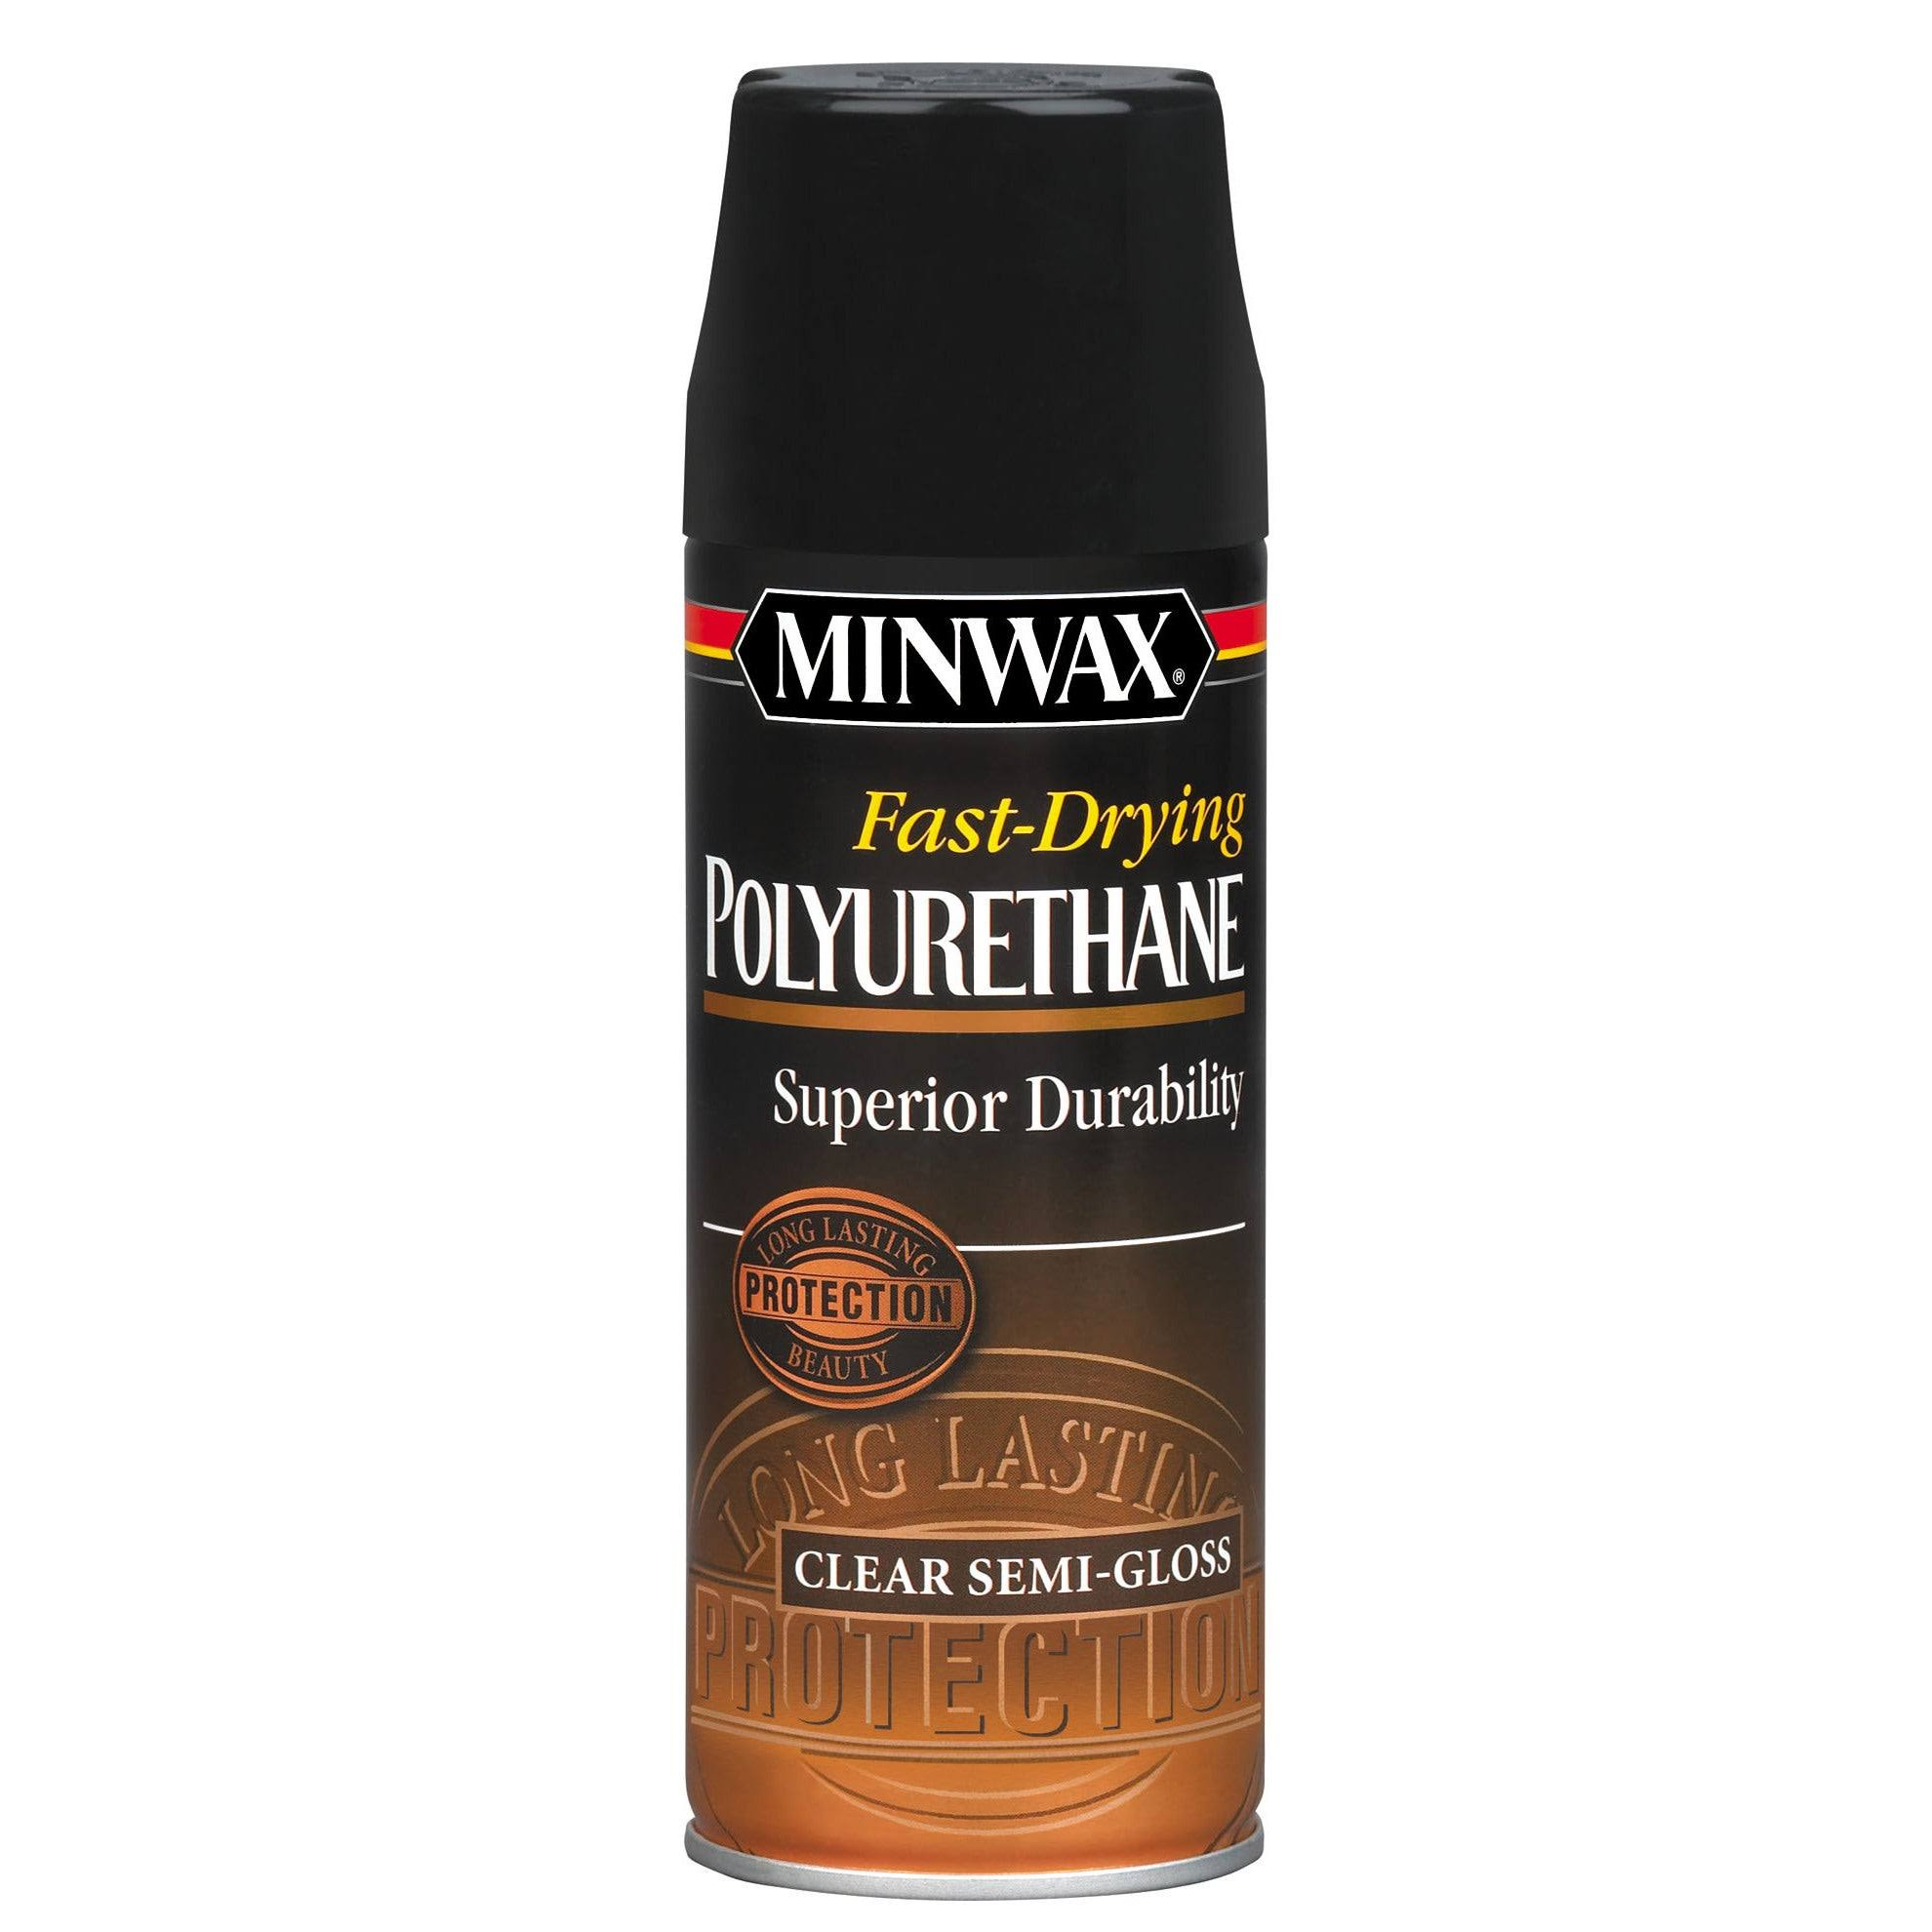 Minwax Fast-drying Polyurethane Aerosol Spray 0 Semi-gloss Finish